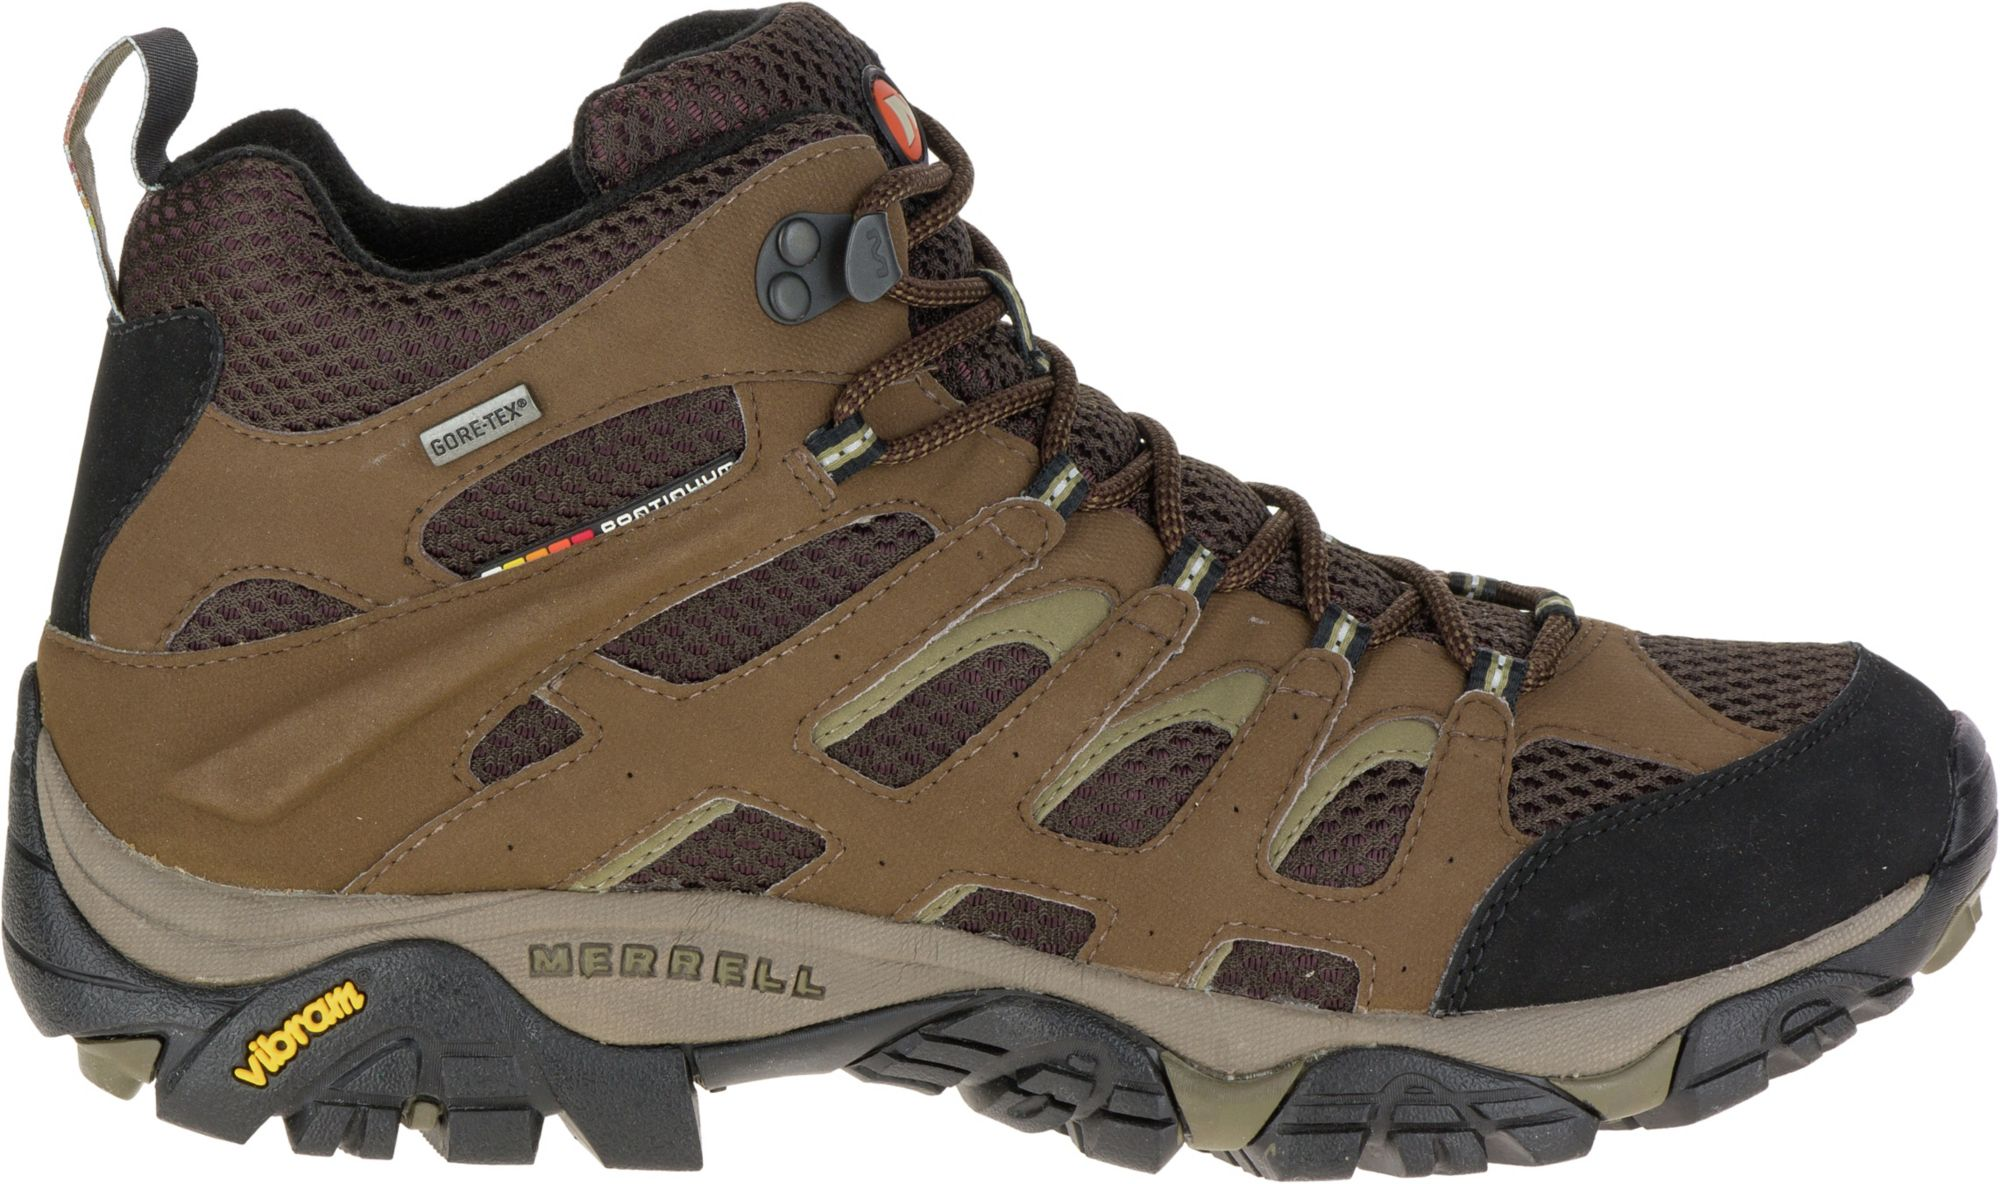 Merrell Men's Moab Mid GORE-TEX Hiking Boots| DICK'S Sporting Goods